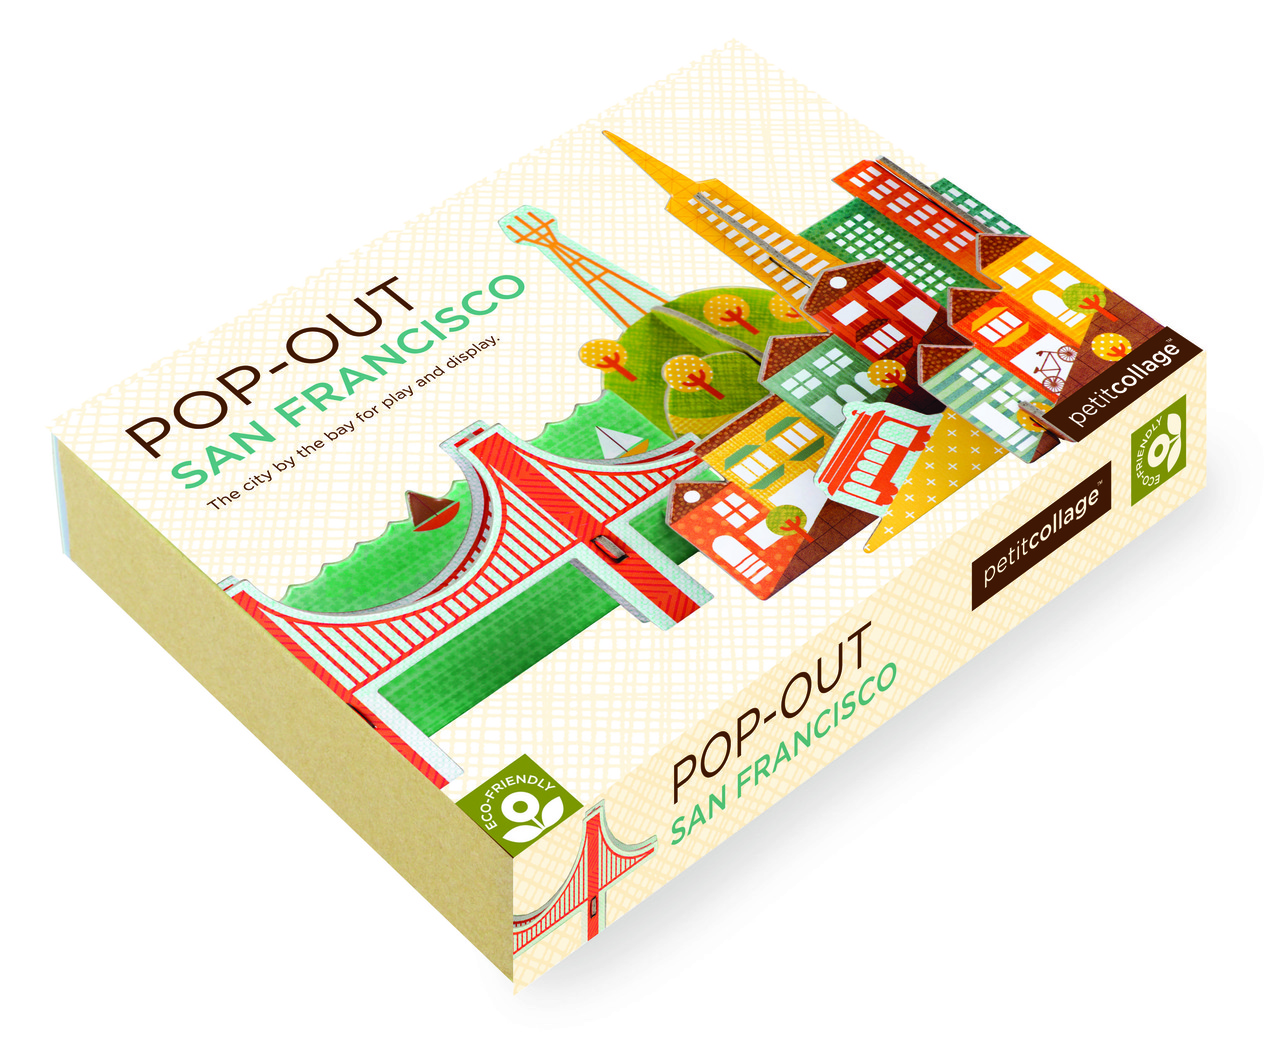 Pop-out and Play San Francisco Packaging